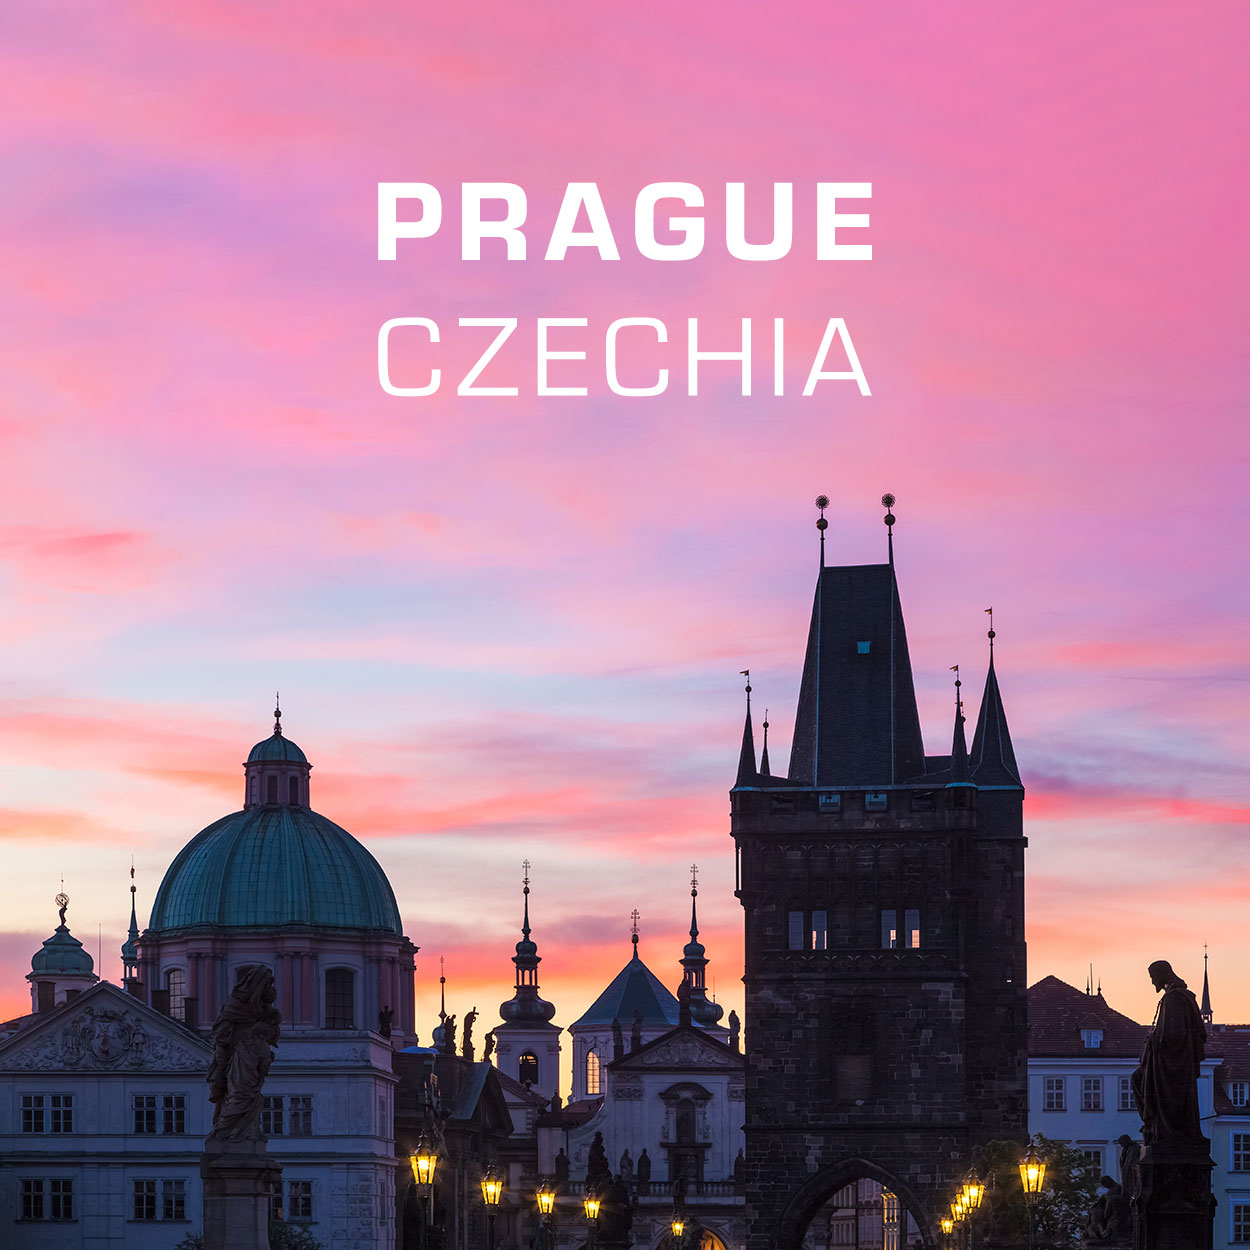 Fridge Magnets - Prague, Czechia - Sunrise on Charles Bridge